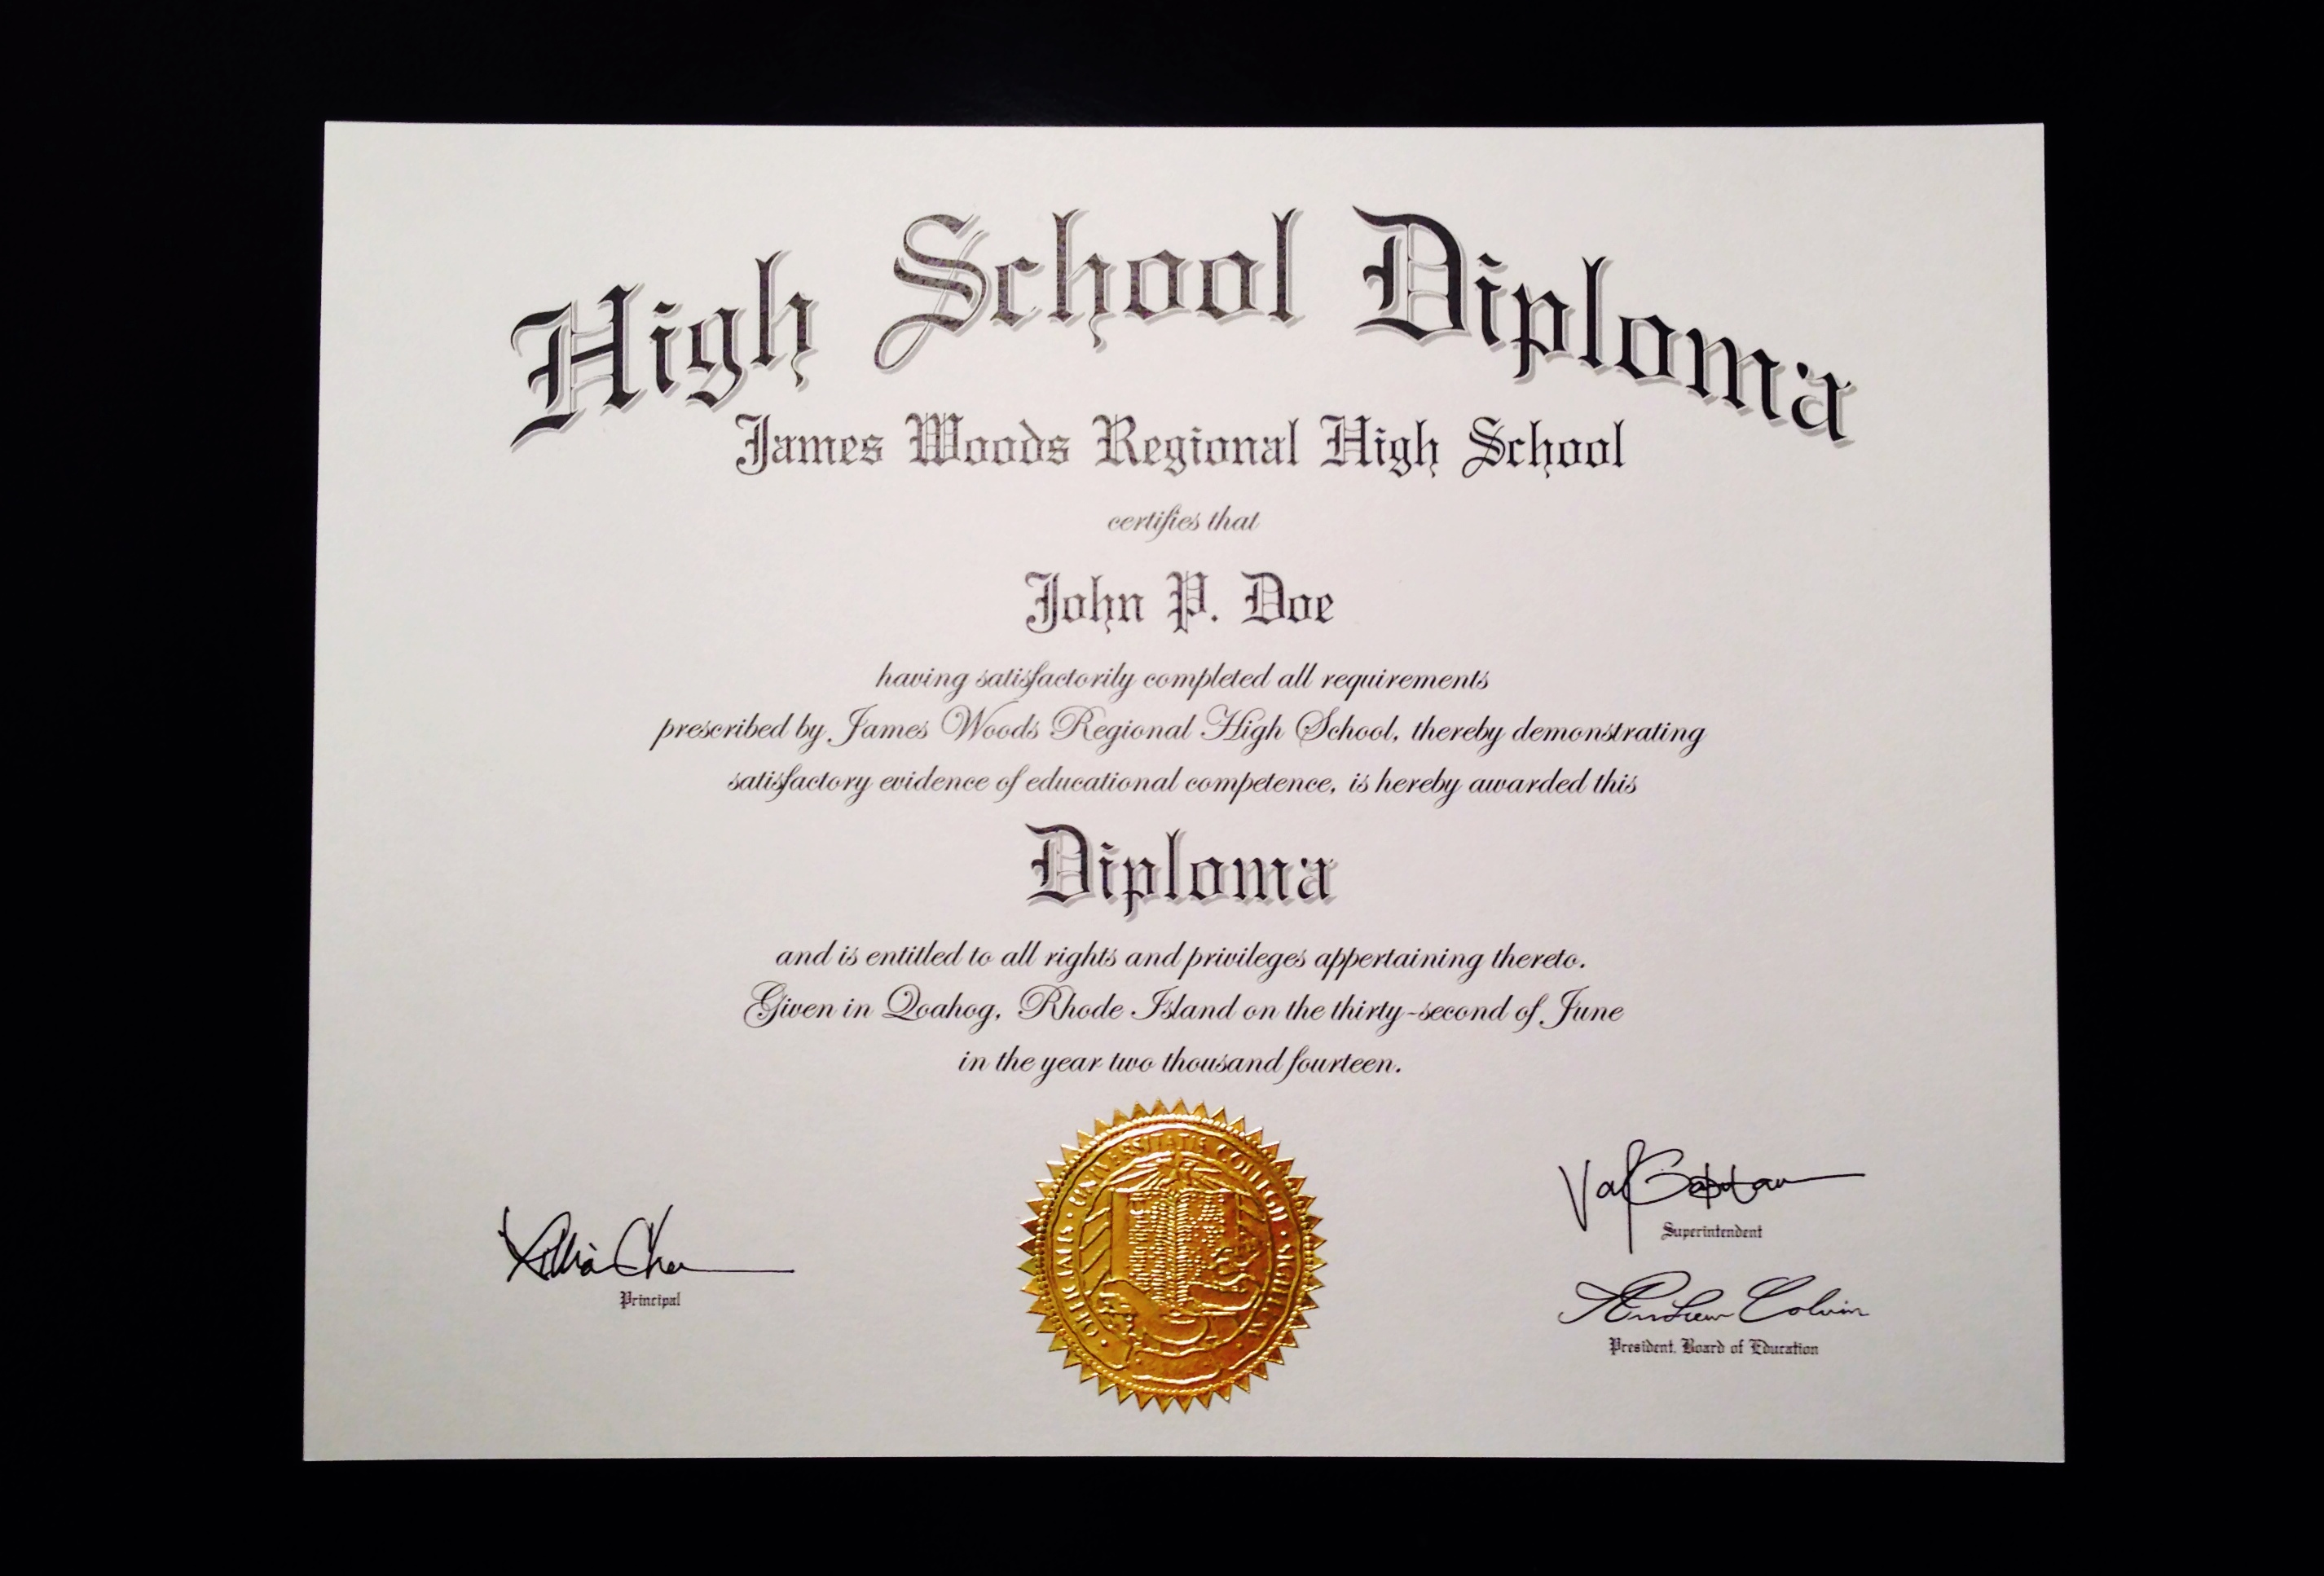 free diploma templates - buy a fake high school diploma online